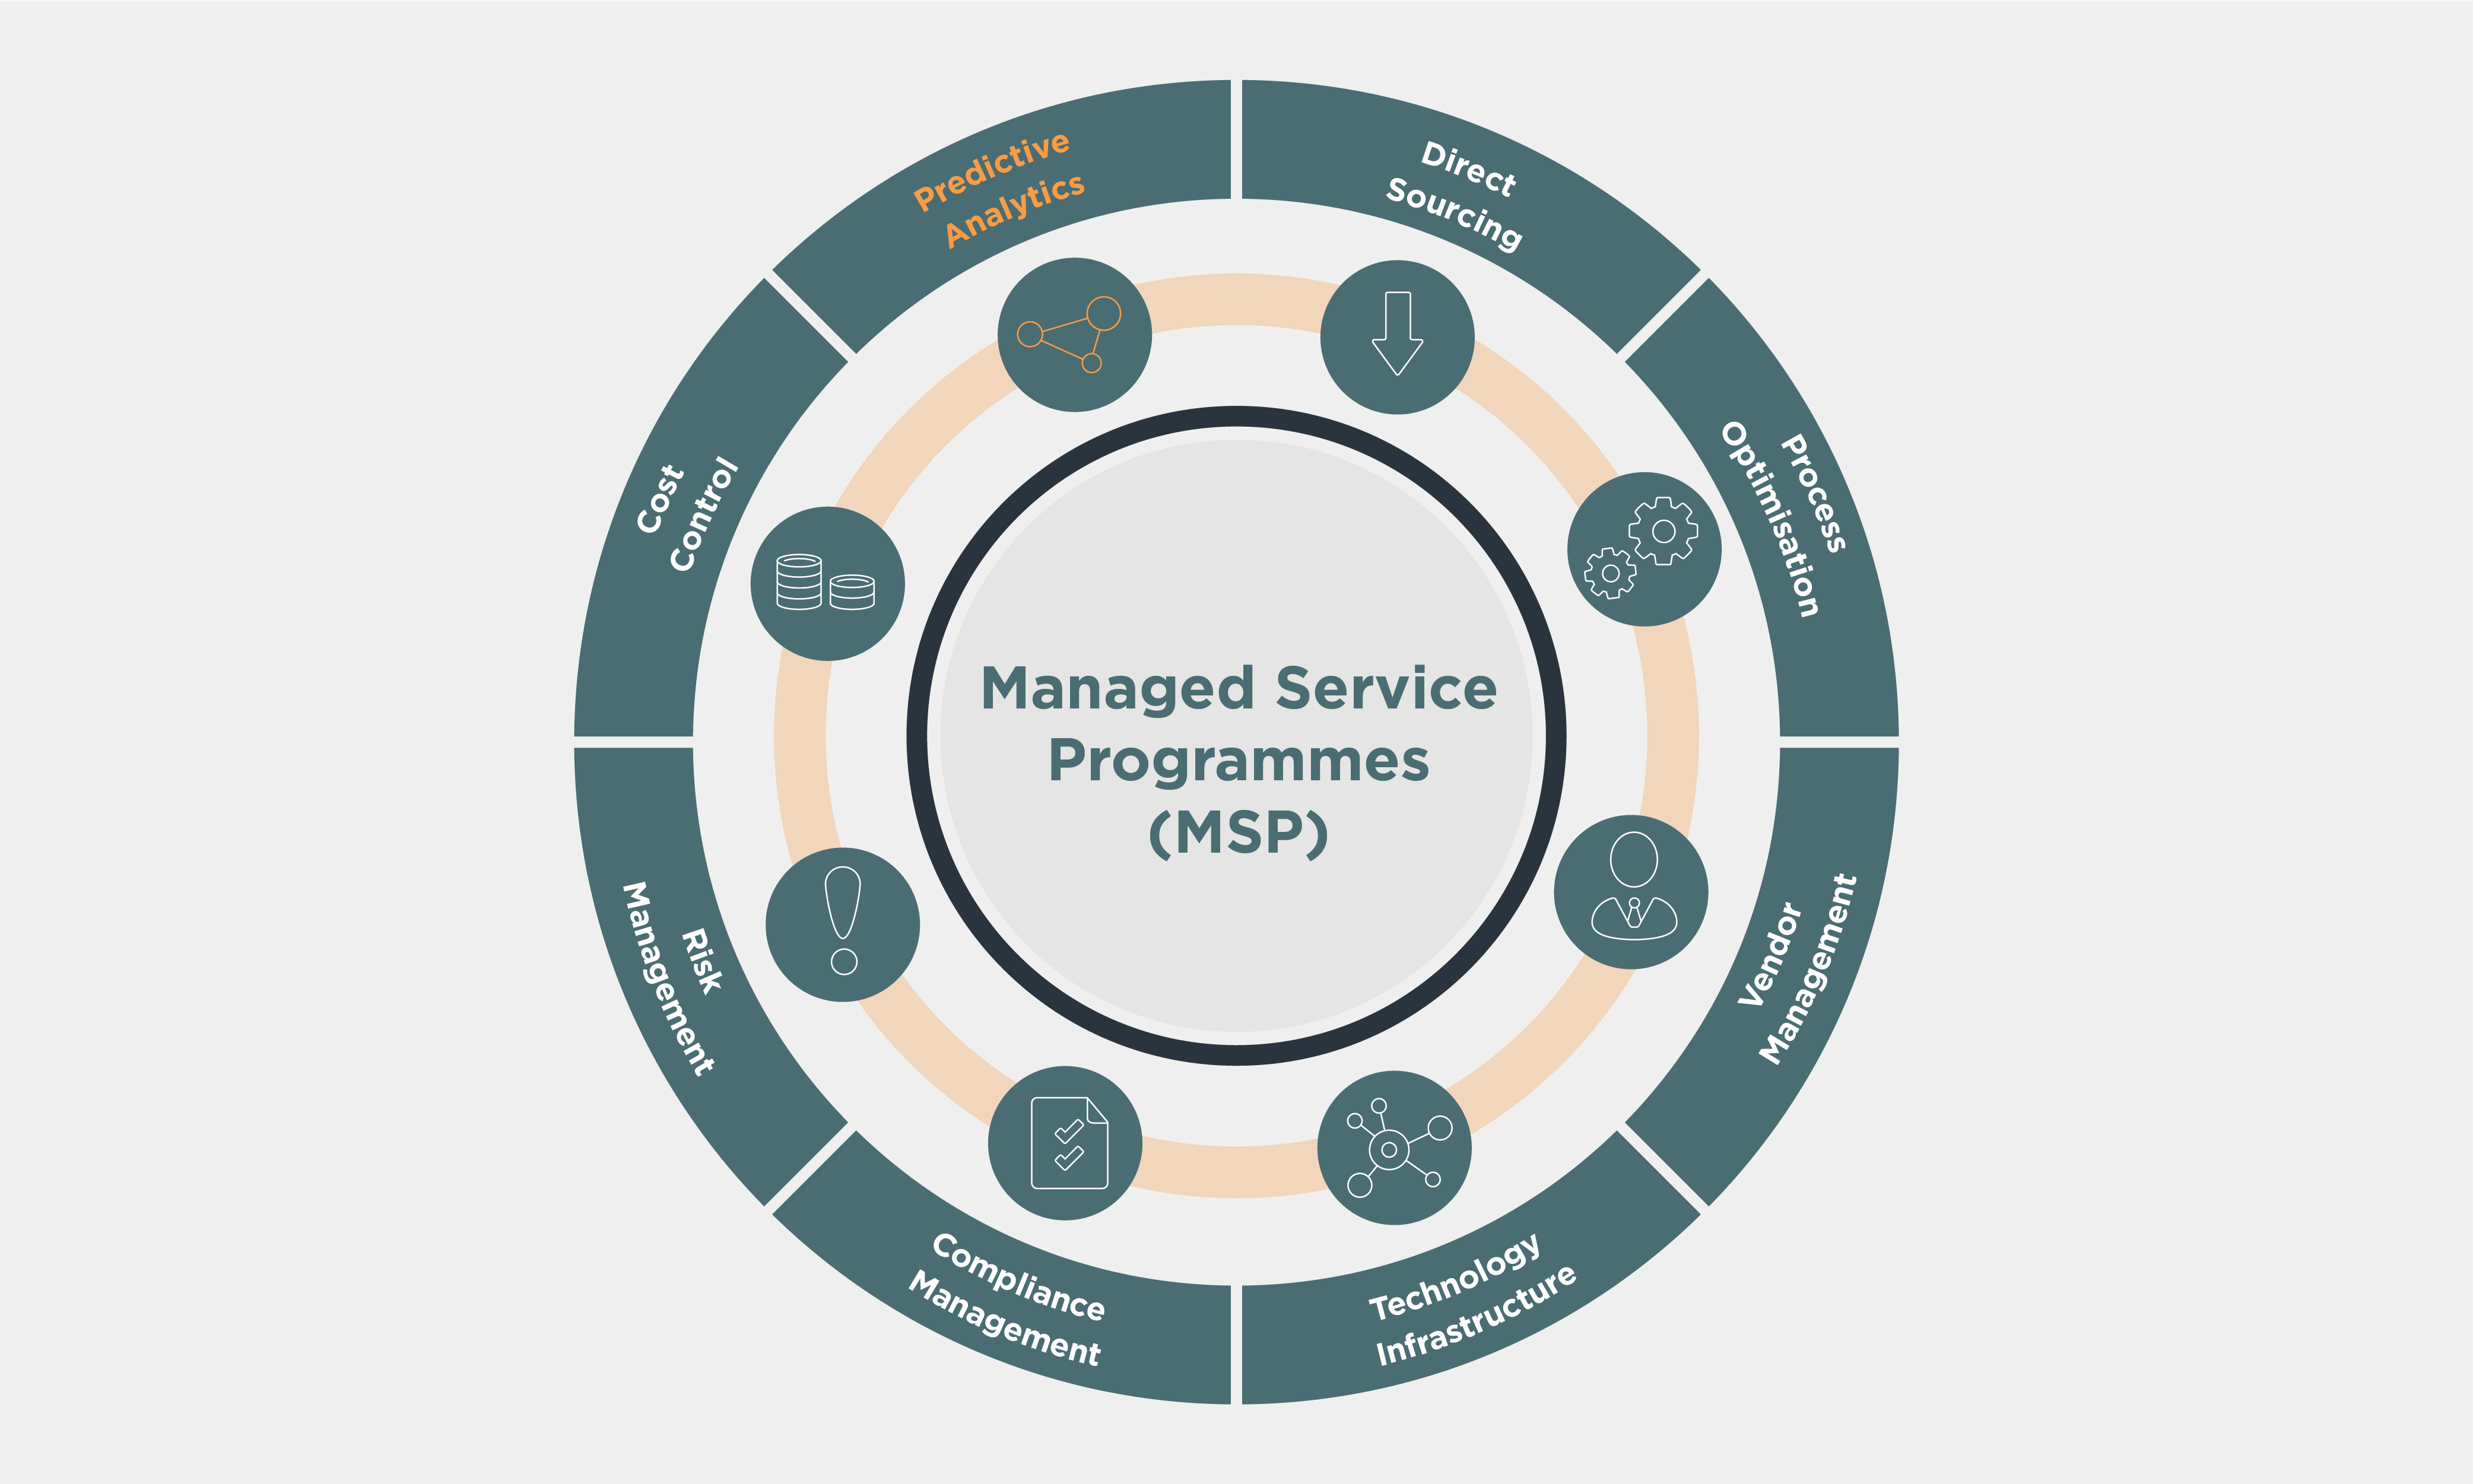 Managed Service Programmes (MSP) wheel with Predictive Analytics highlighted in orange